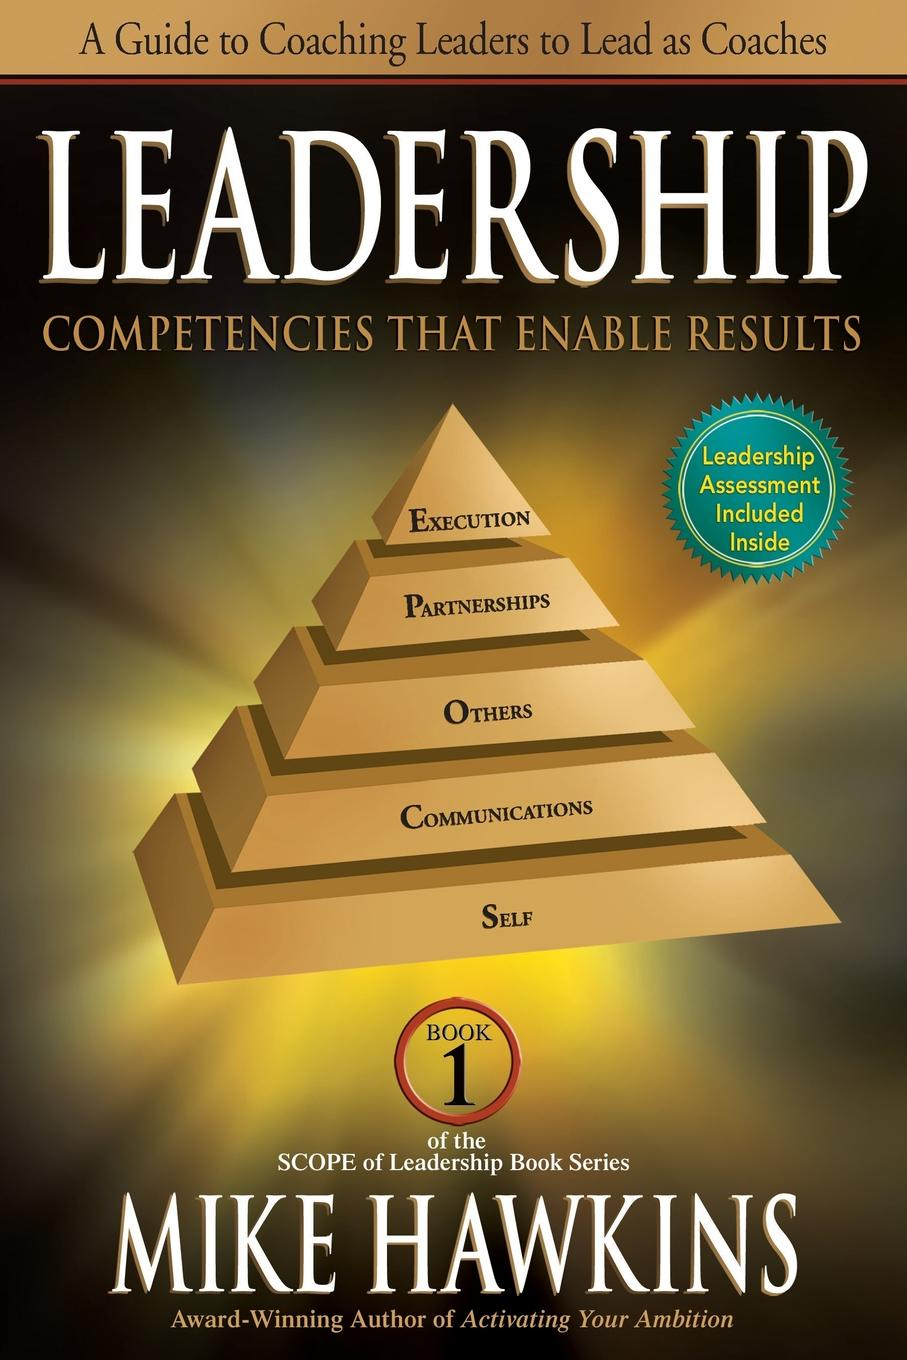 Mike Hawkins Leadership Competencies That Enable Results. A Guide to Coaching Leaders to Lead as Coaches leadership a gateway to organizational performance